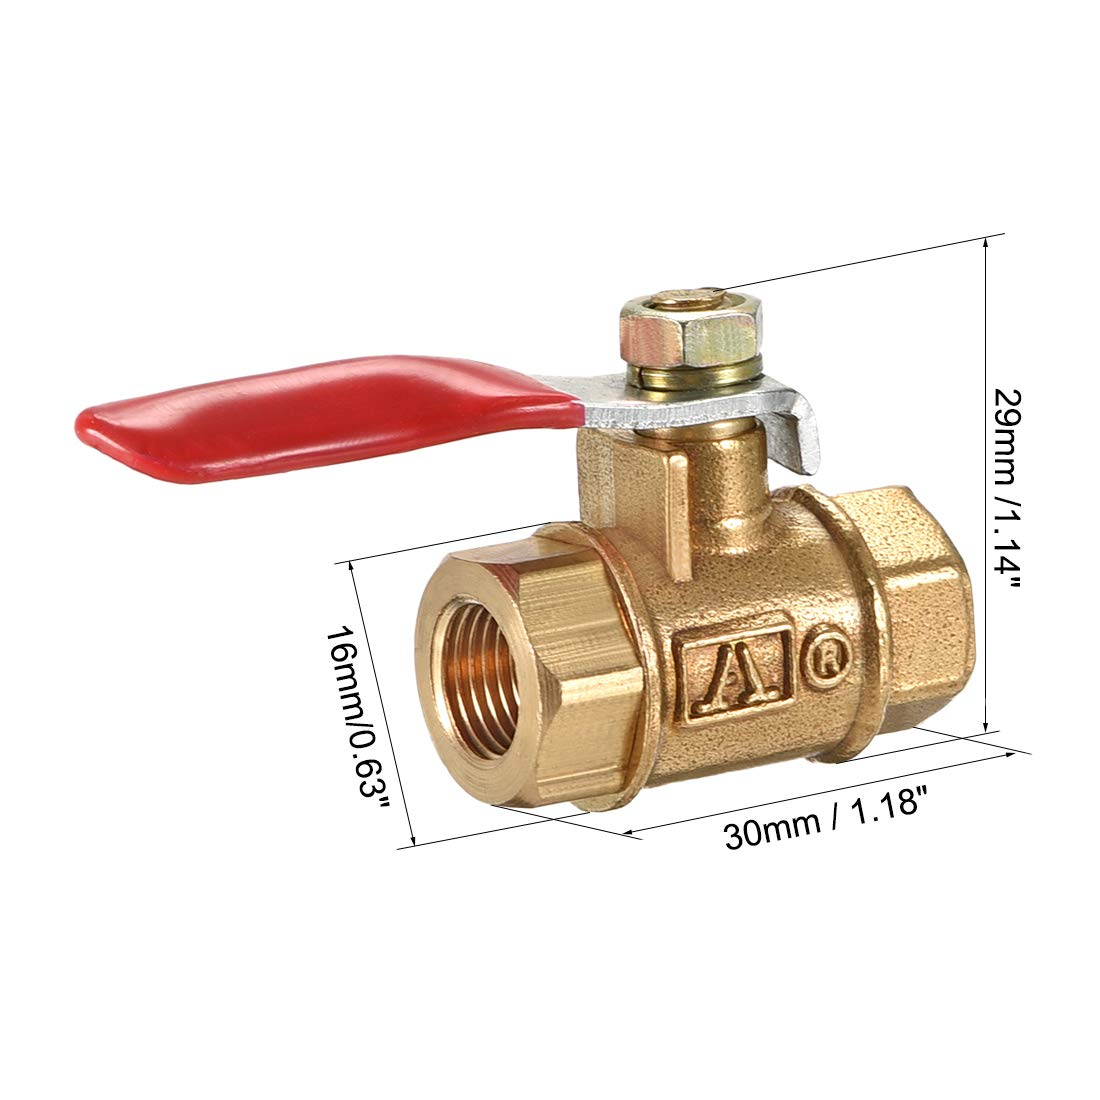 uxcell Brass Air Ball Valve Shut-Off Switch G1//8 Female to Female Pipe Tubing Fitting Coupler 180 Degree Operation Handle 4Pcs